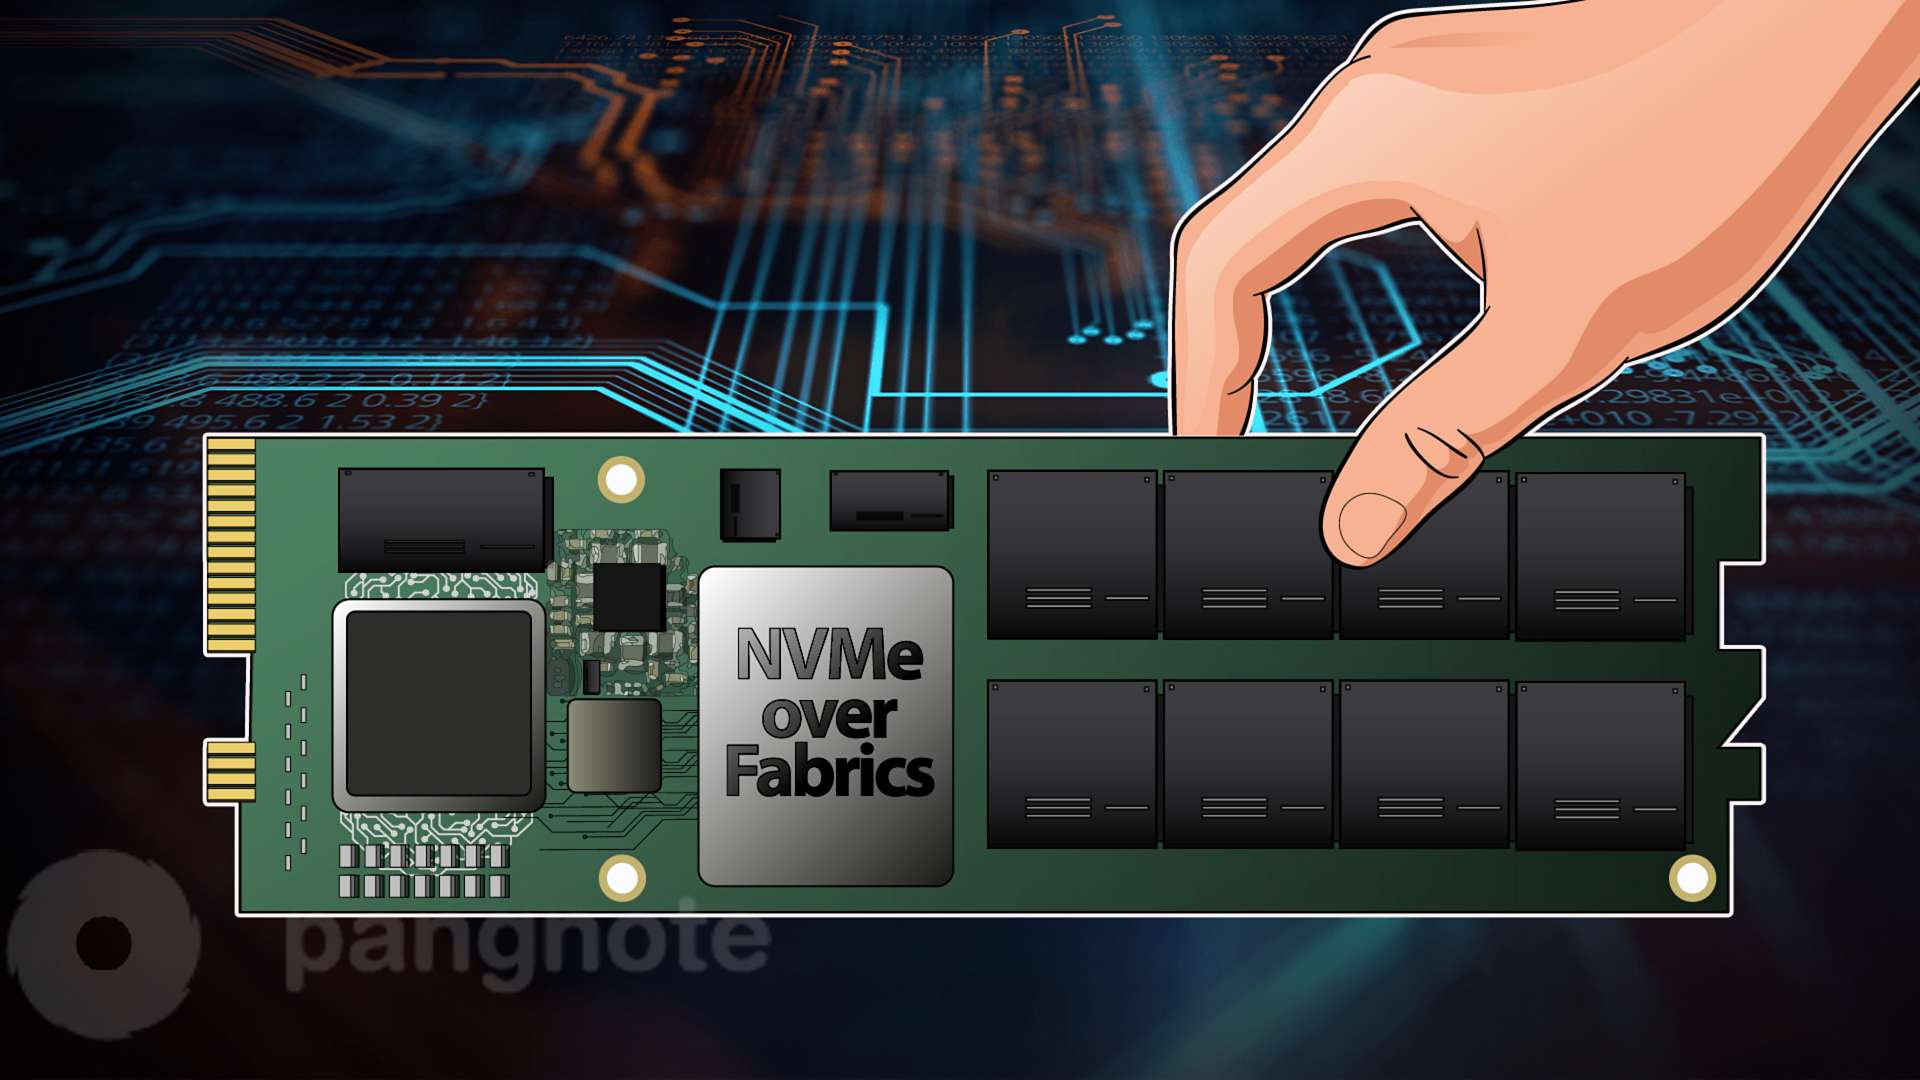 NVMe over Fabrics: new storage technology